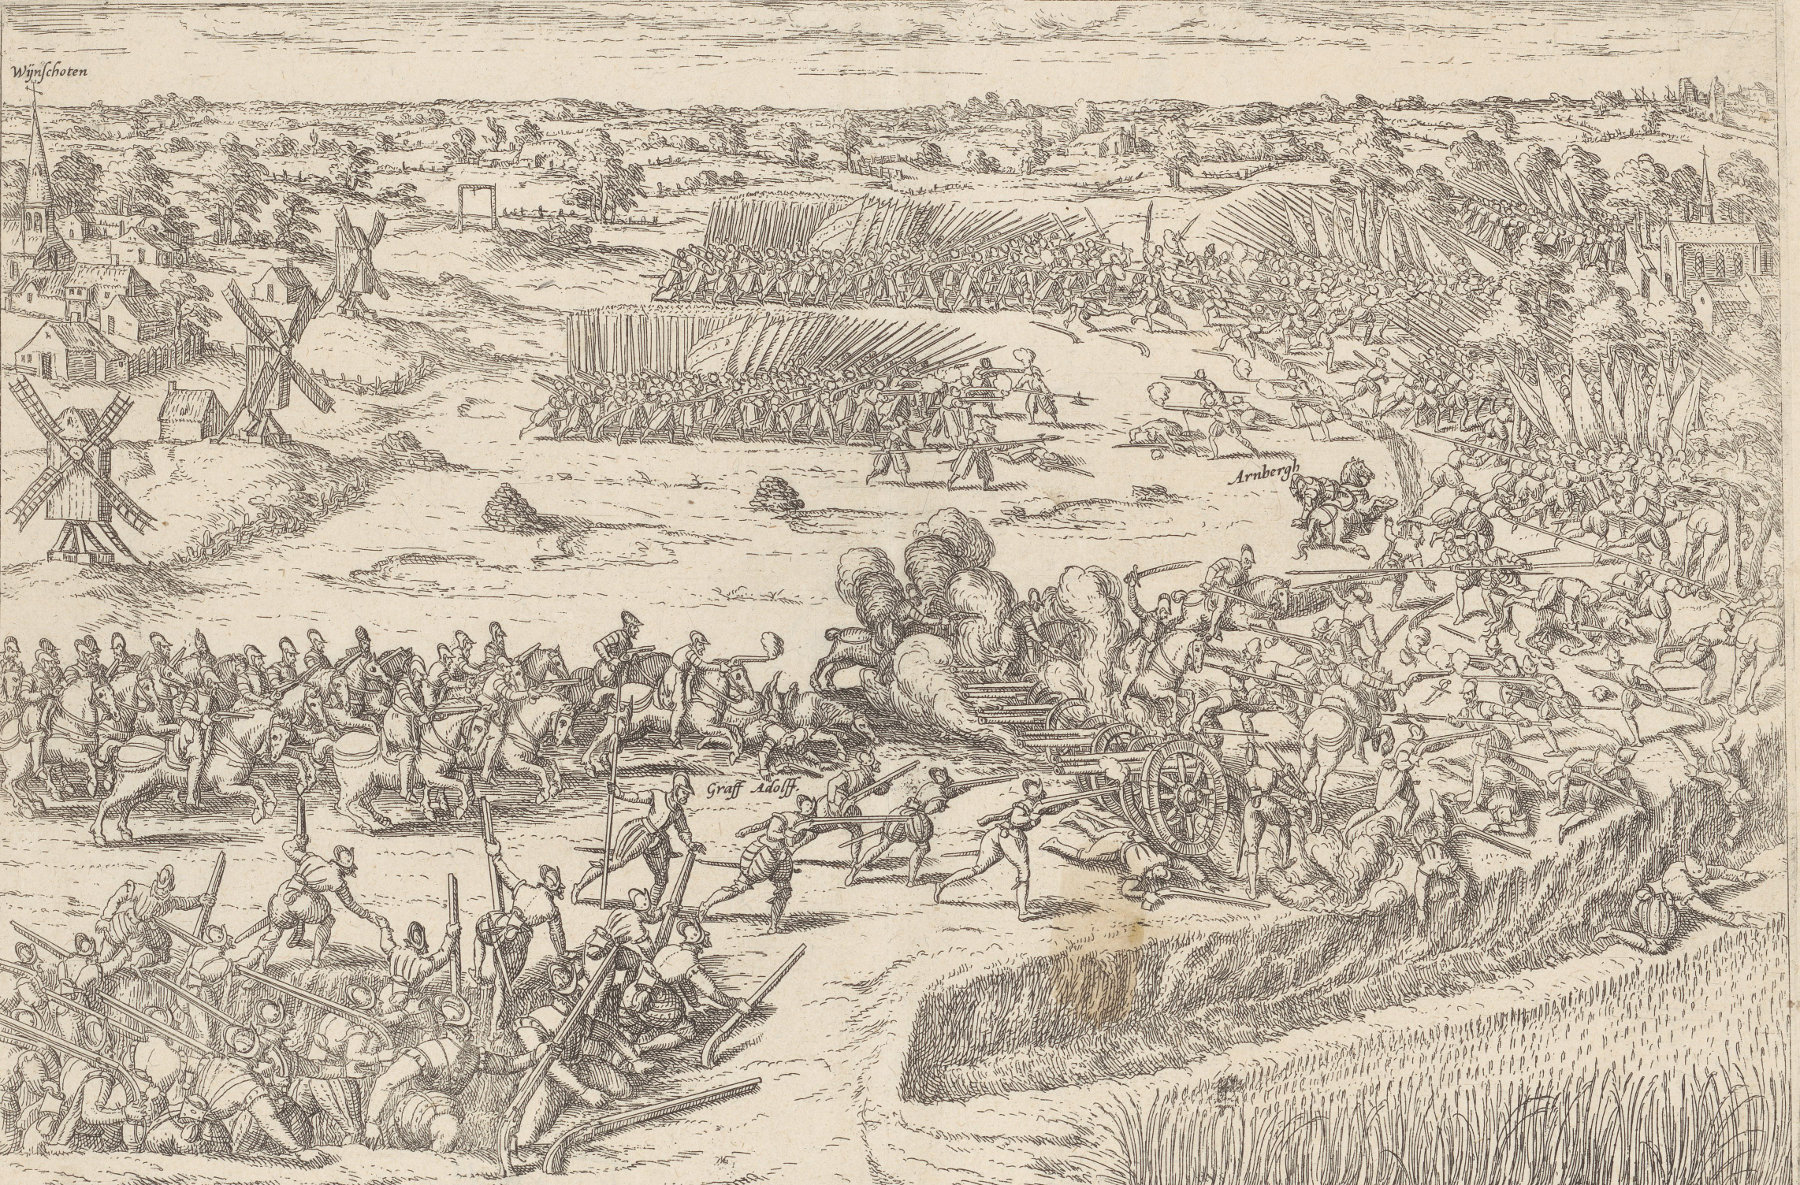 the battle of Heiligerlee